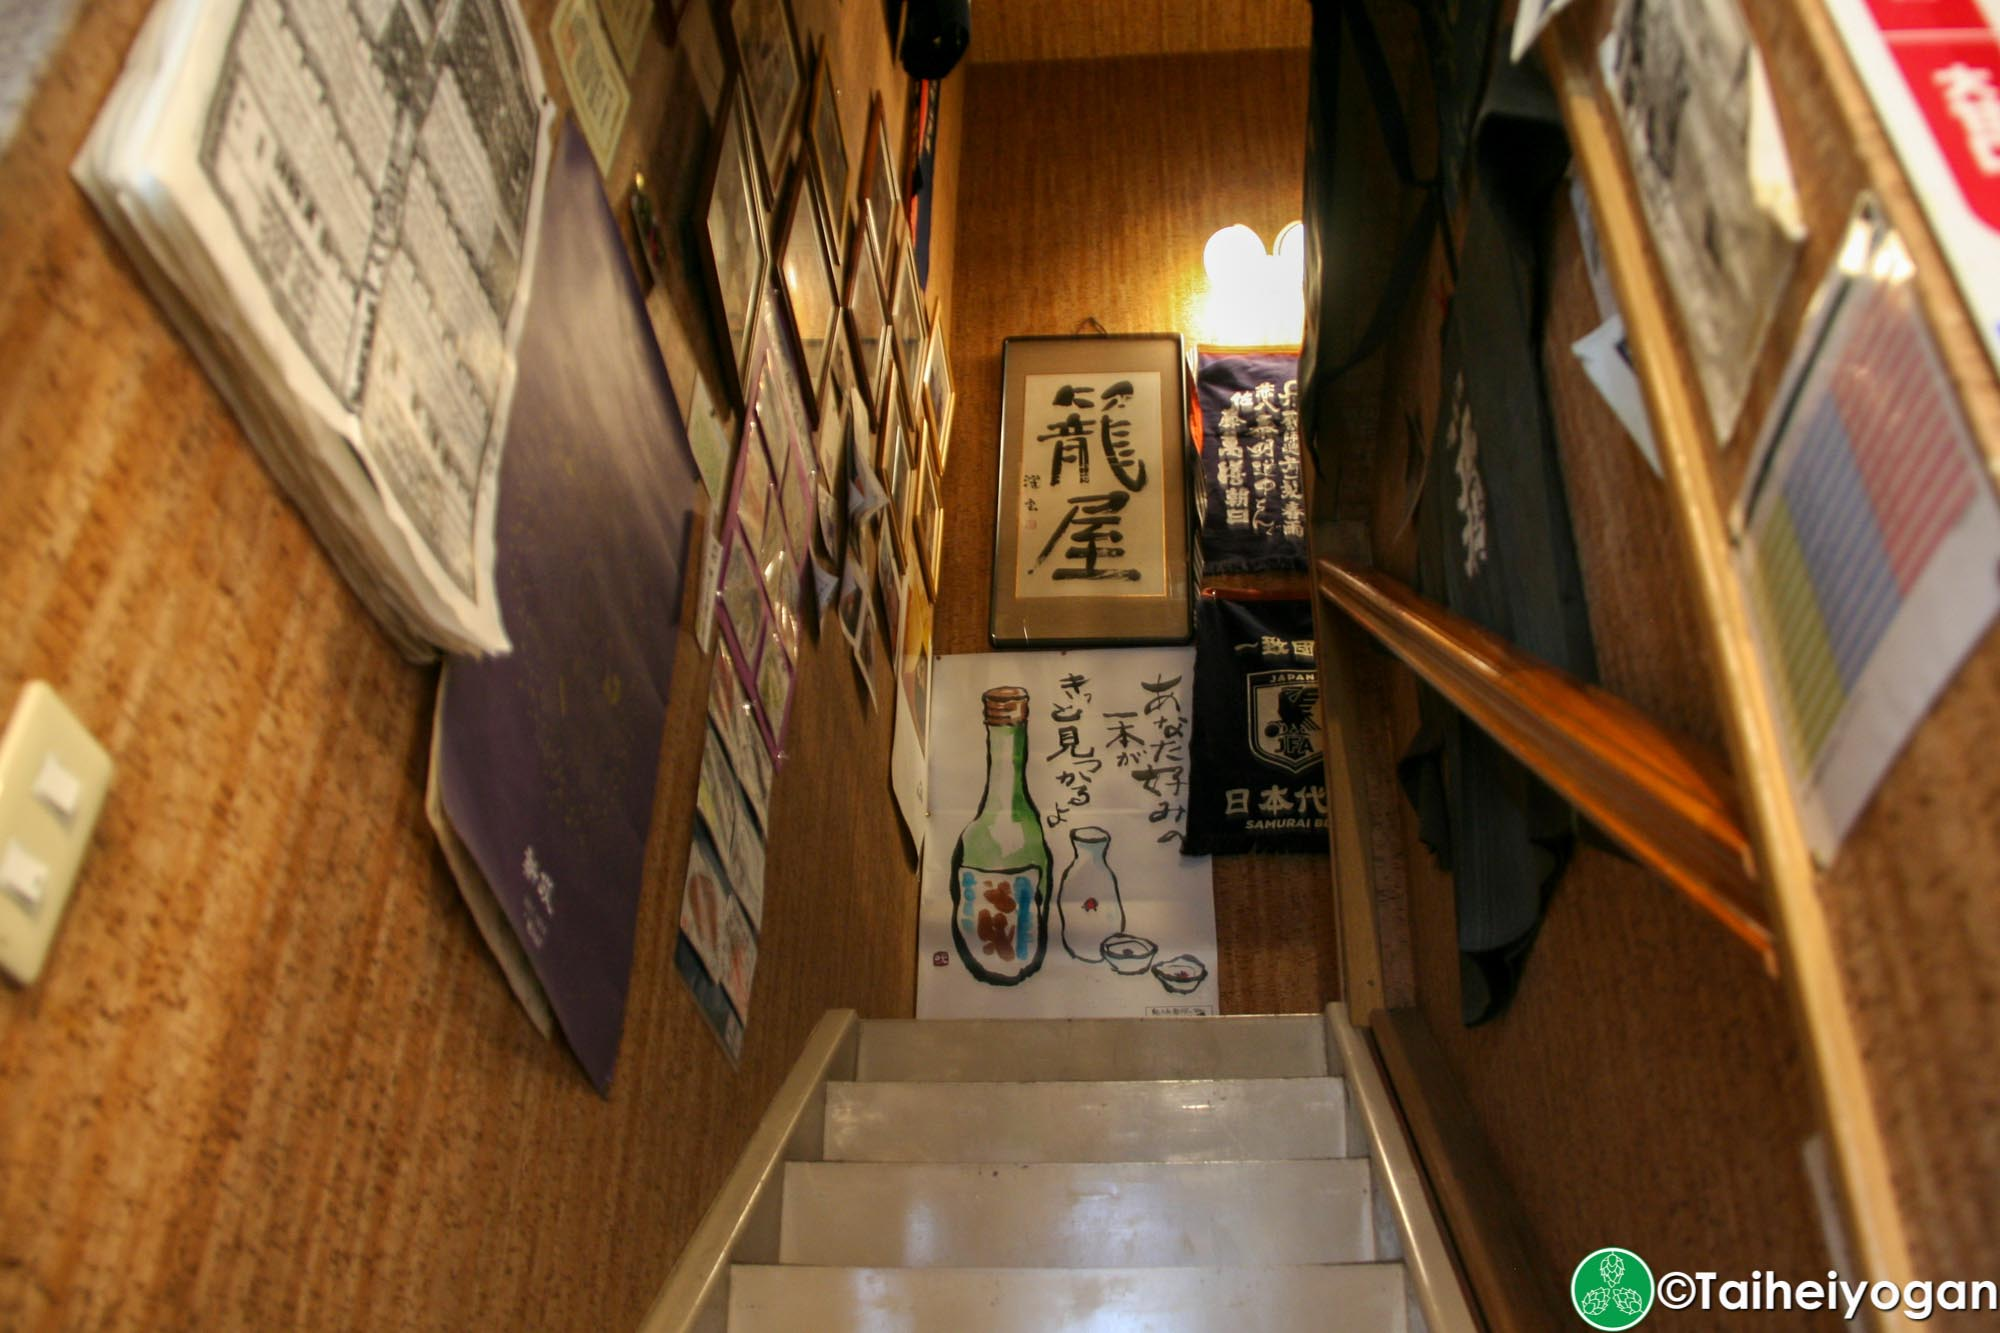 Kagoya (籠屋) - Interior - 1F - Stairs to 2F